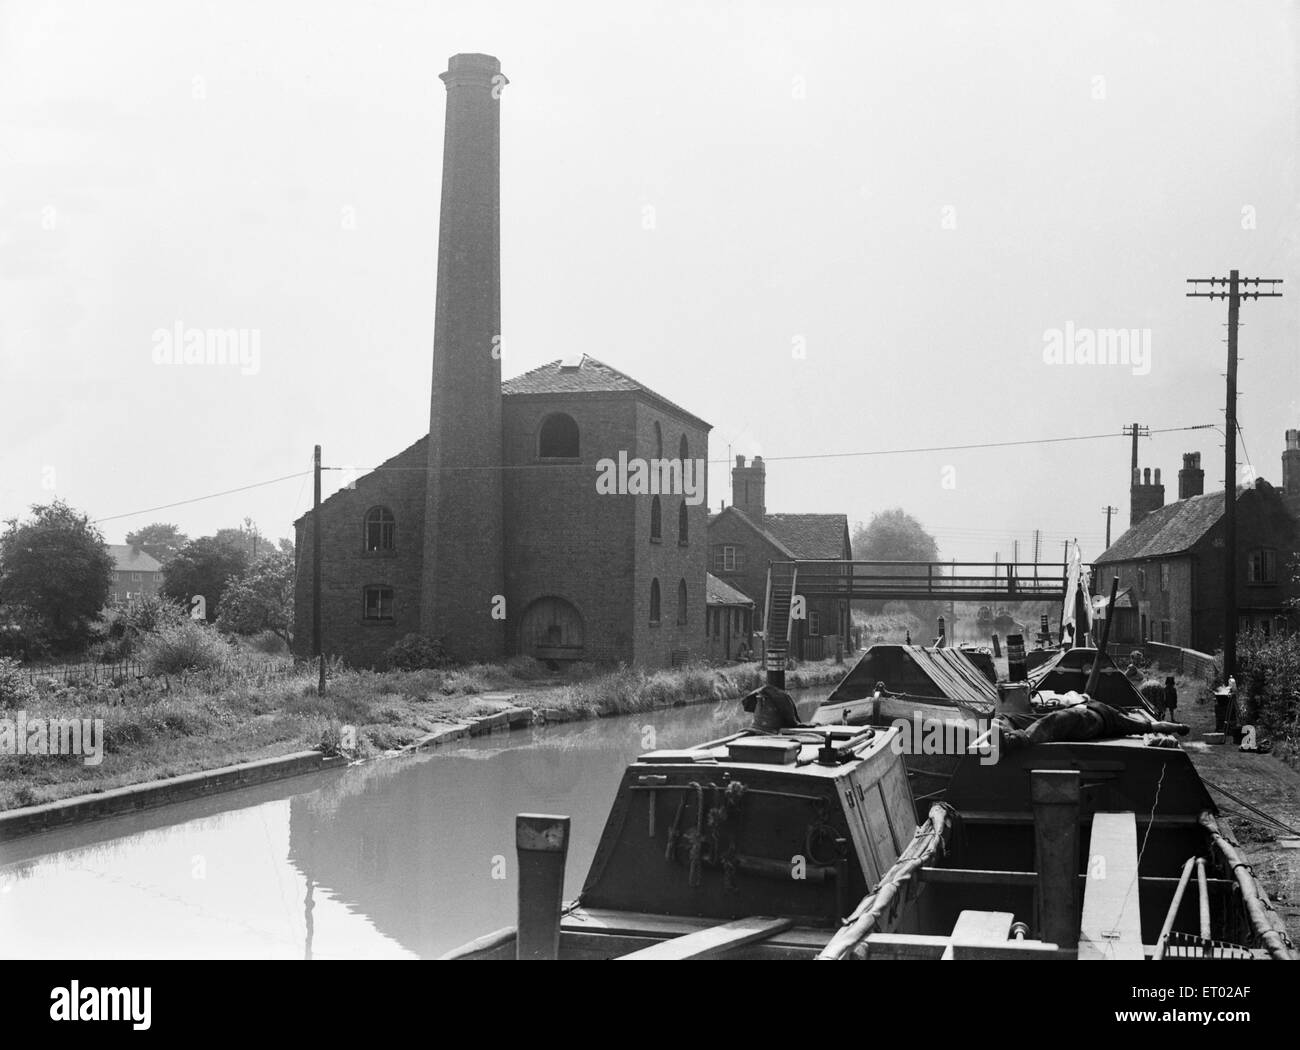 Canal boat captain asleep on the deck of his boat at Hawkesbury Pump house at the junction of the Coventry and Oxford - Stock Image